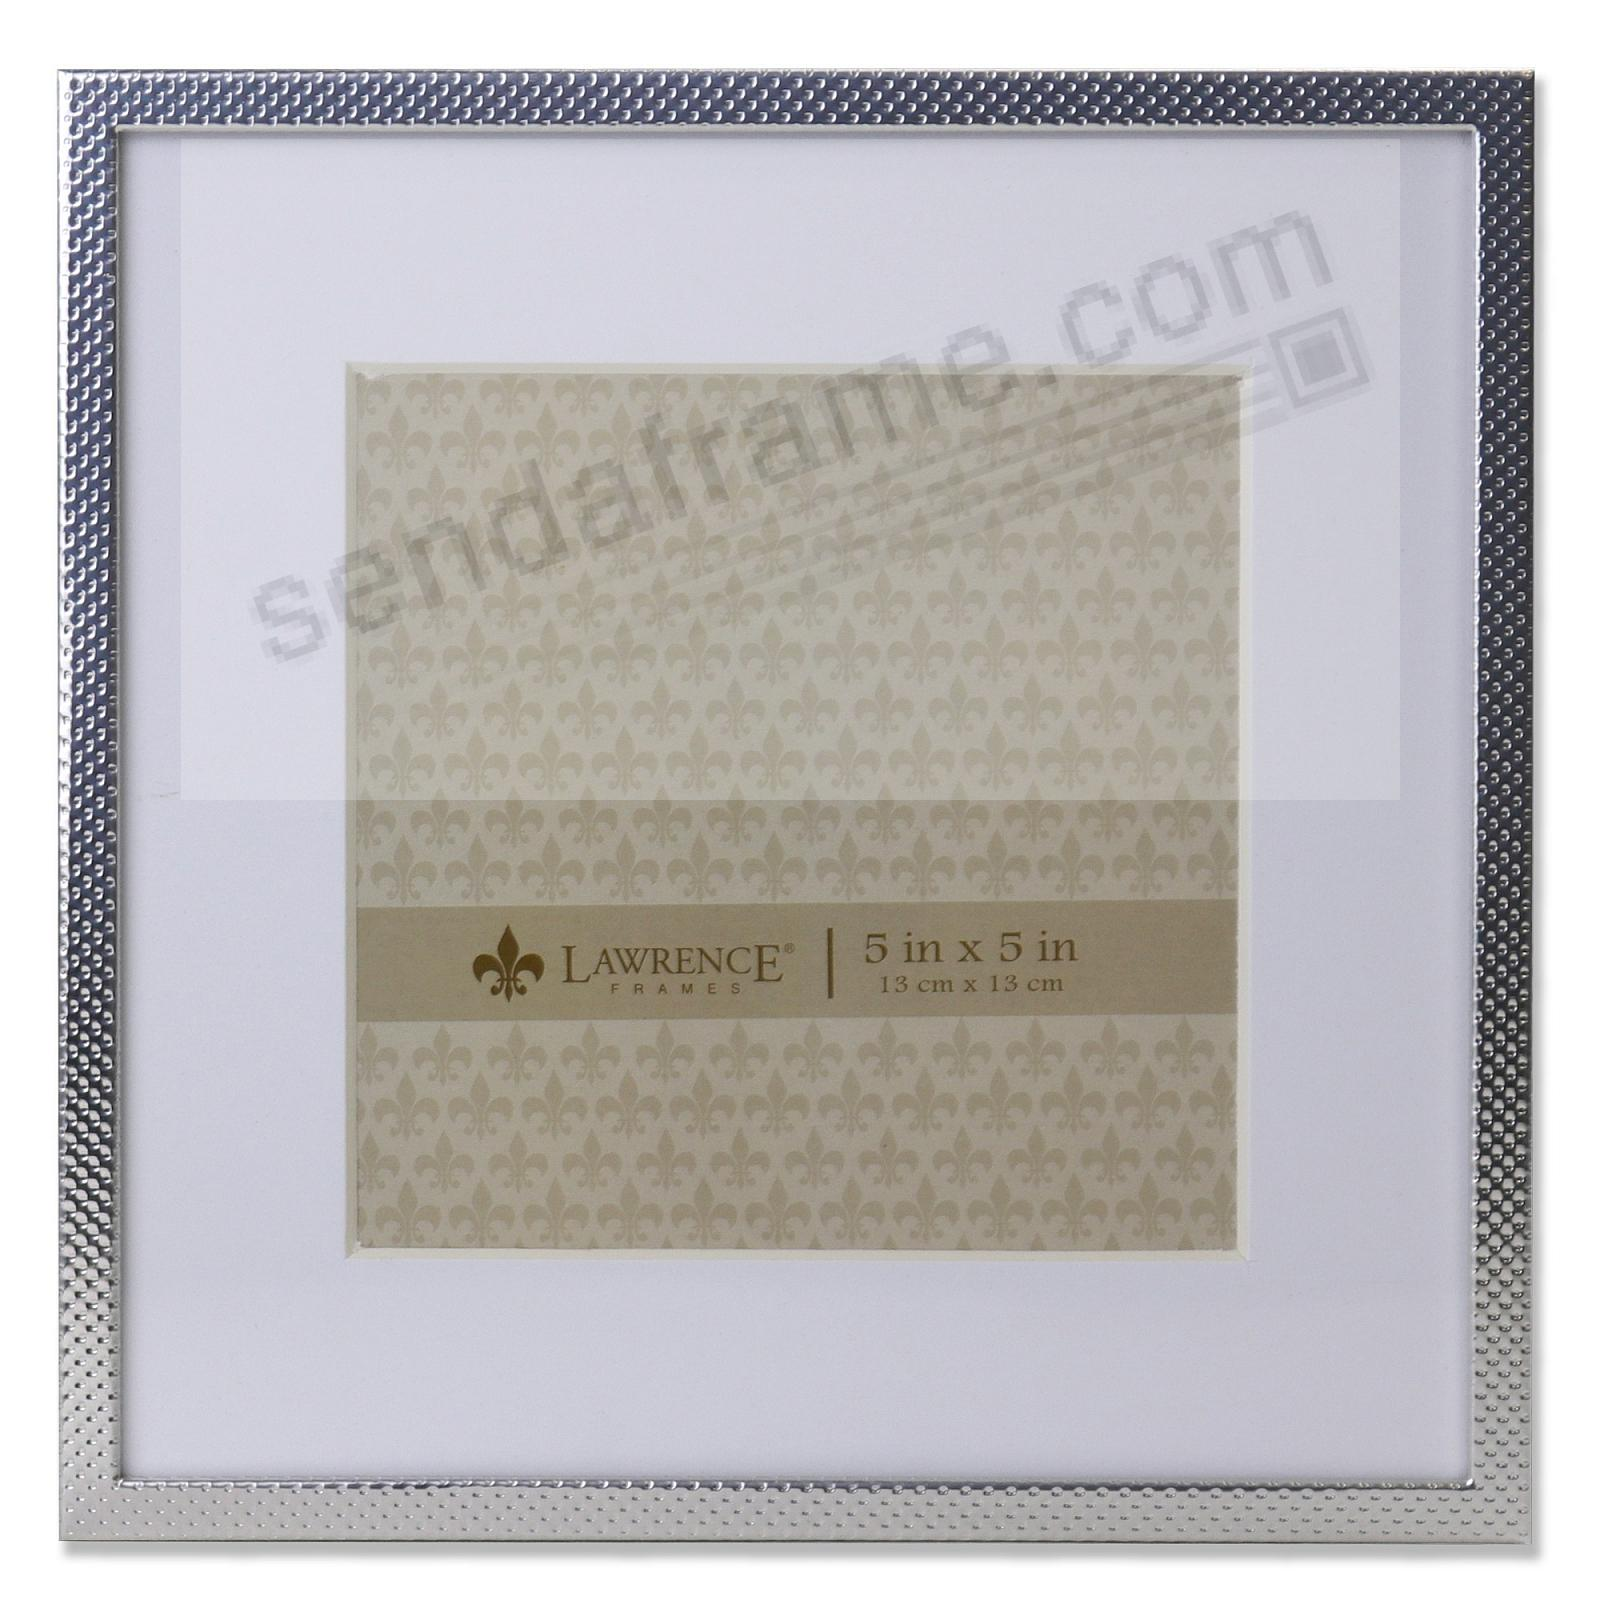 Metallic Swiss-dot pattern with mat 7x7/5x5 by Lawrence Frames®